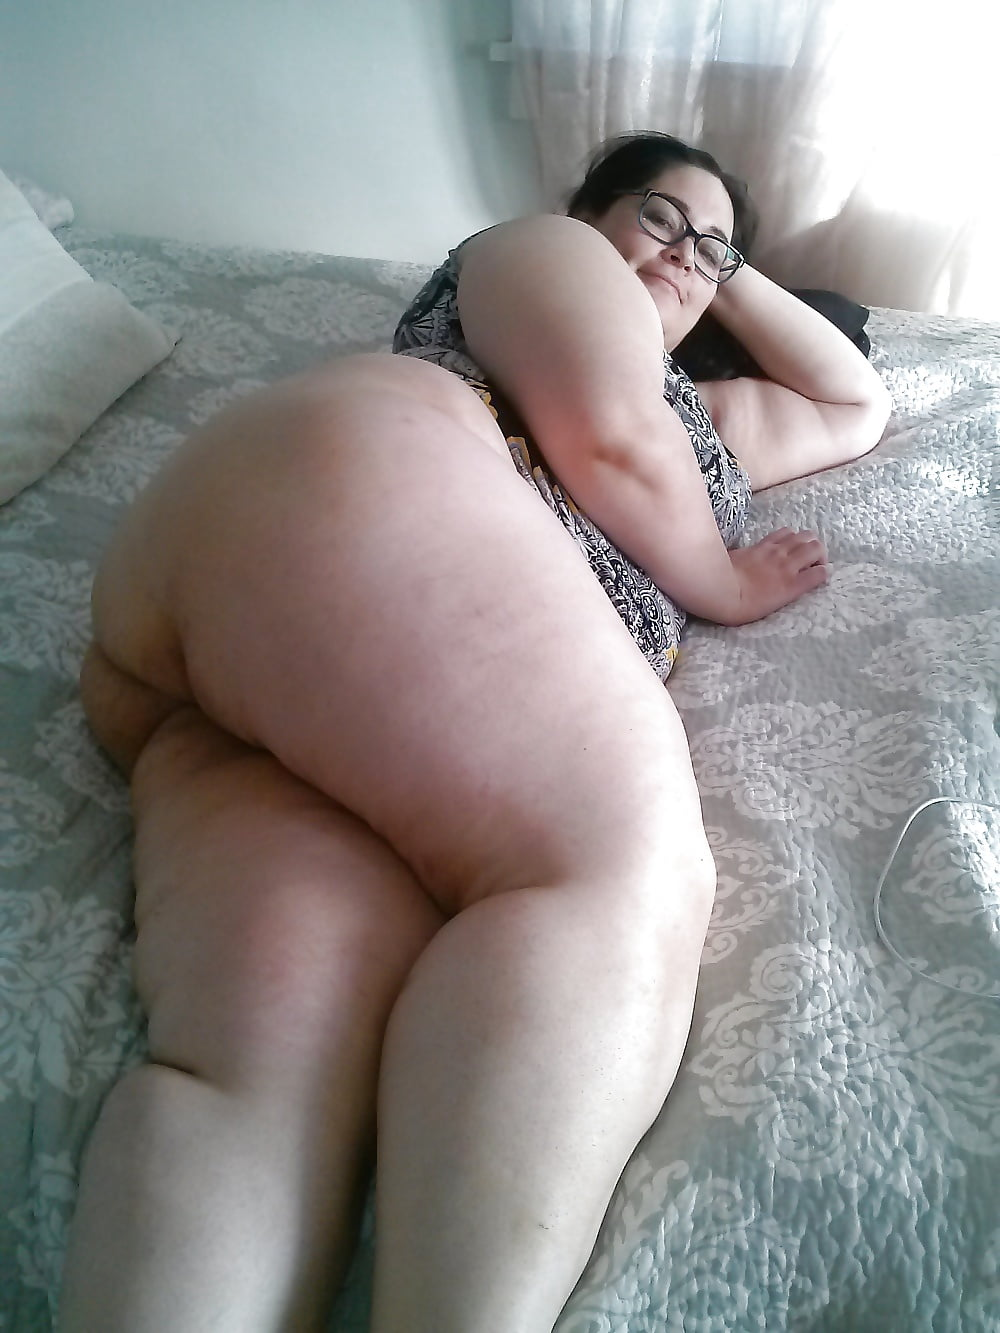 pictures of women nude doing yoga